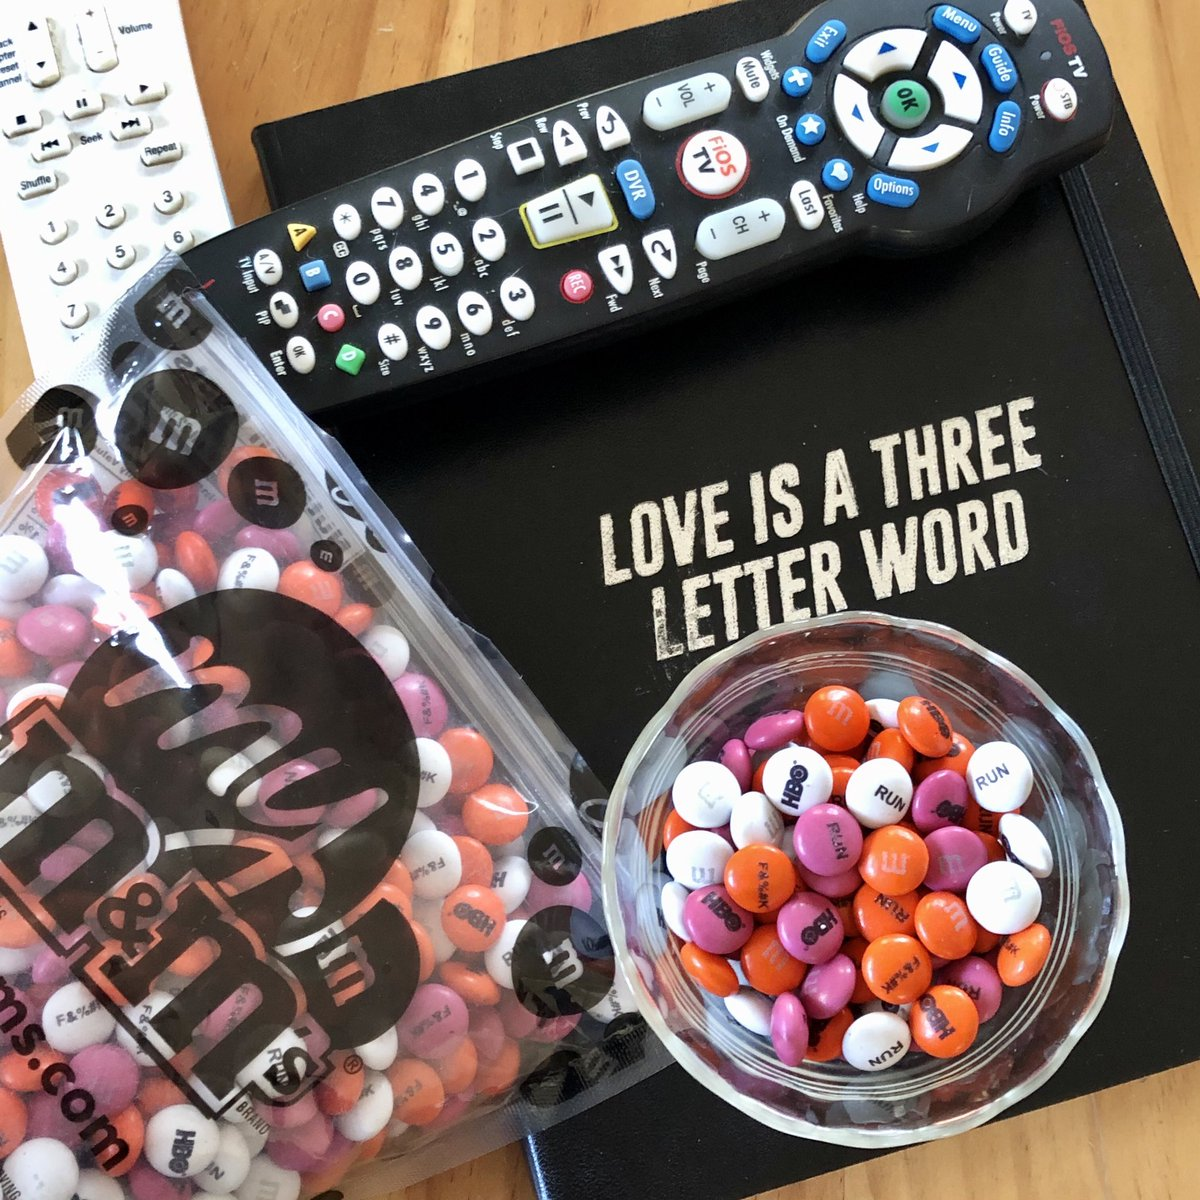 Who is ready to watch the season finale of #RUNHBO? It's happening in less than 3 hours! Thanks to @HBO, I've got my yummy snacks at the ready & a cool journal to write down my feelings post-show. #HBO #LetsDoThis pic.twitter.com/jAHo1B035Z